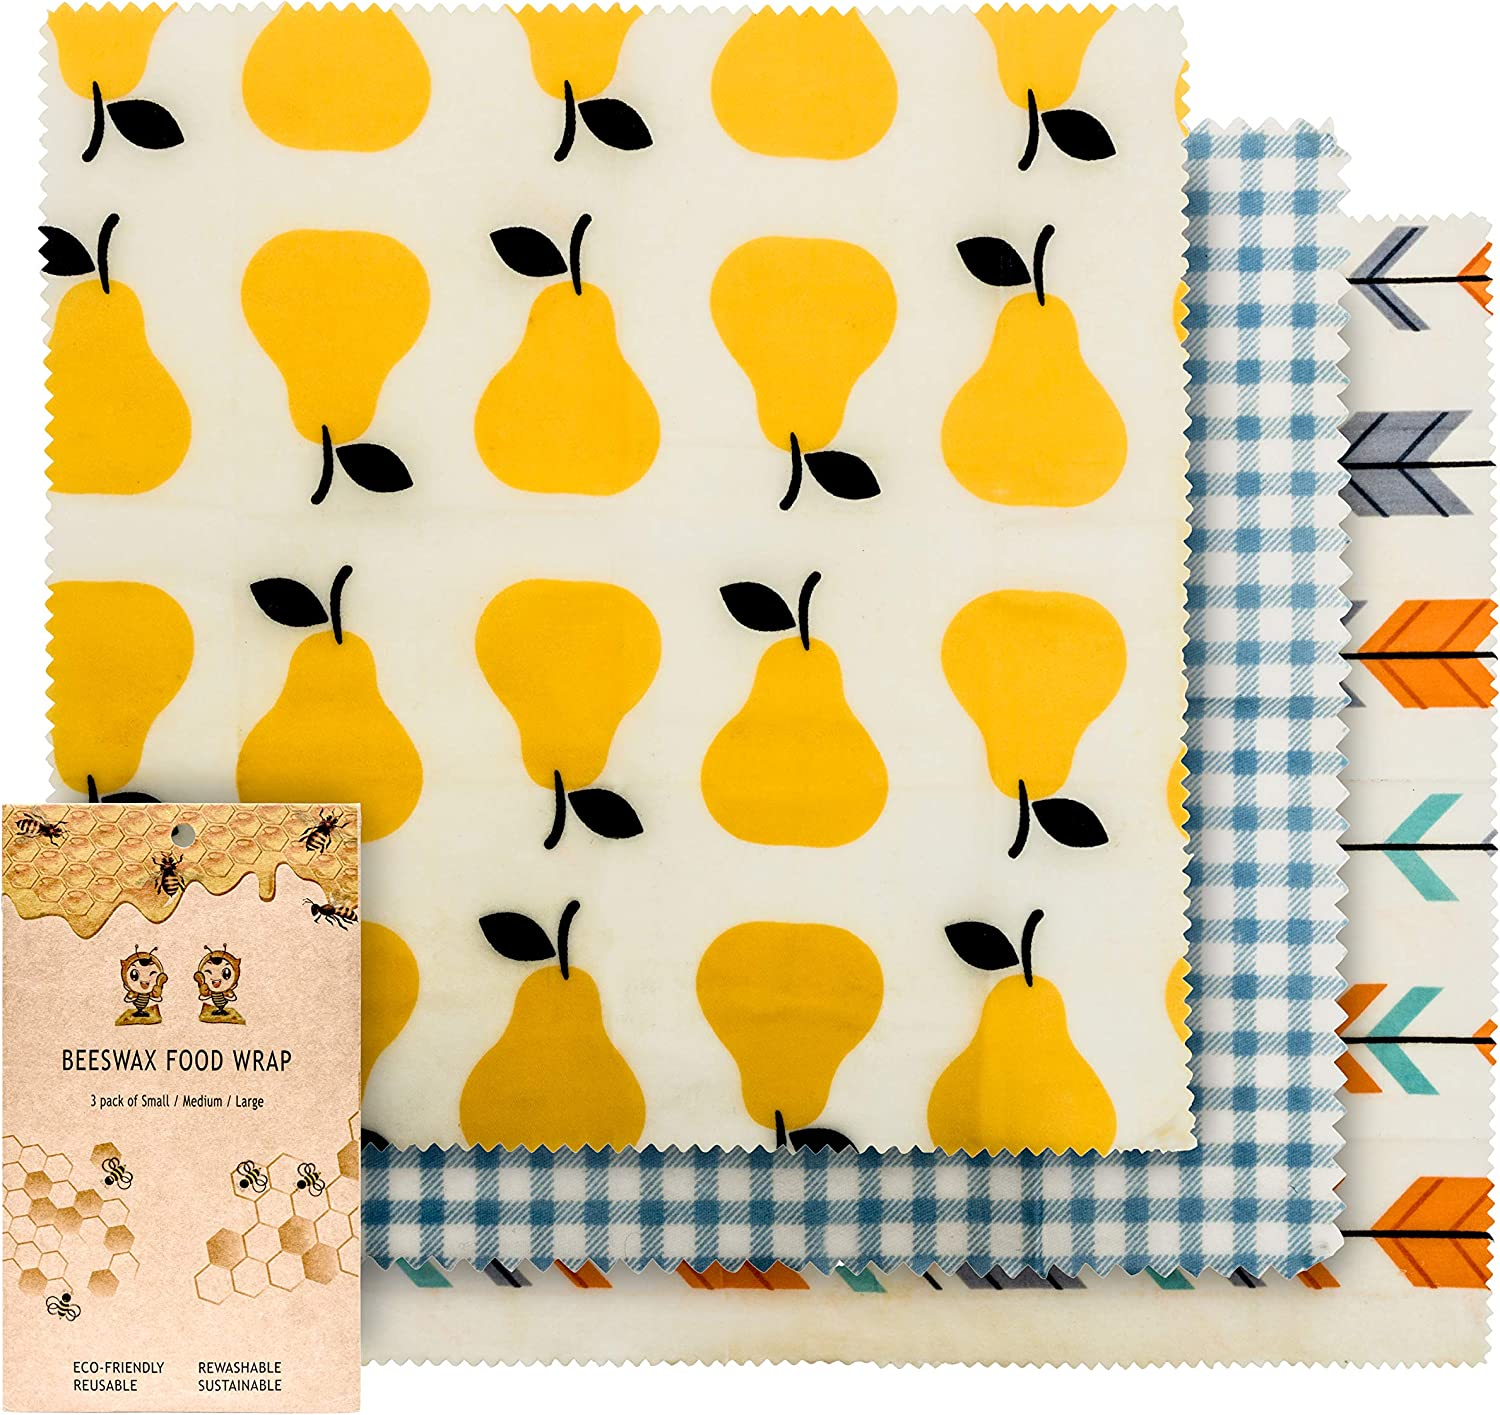 BusyBee Eco Friendly Beeswax Wrap Assorted 3 Pack – All Natural FDA Compliant Reusable Food Wrap – Store & Preserve Foods Without Plastic